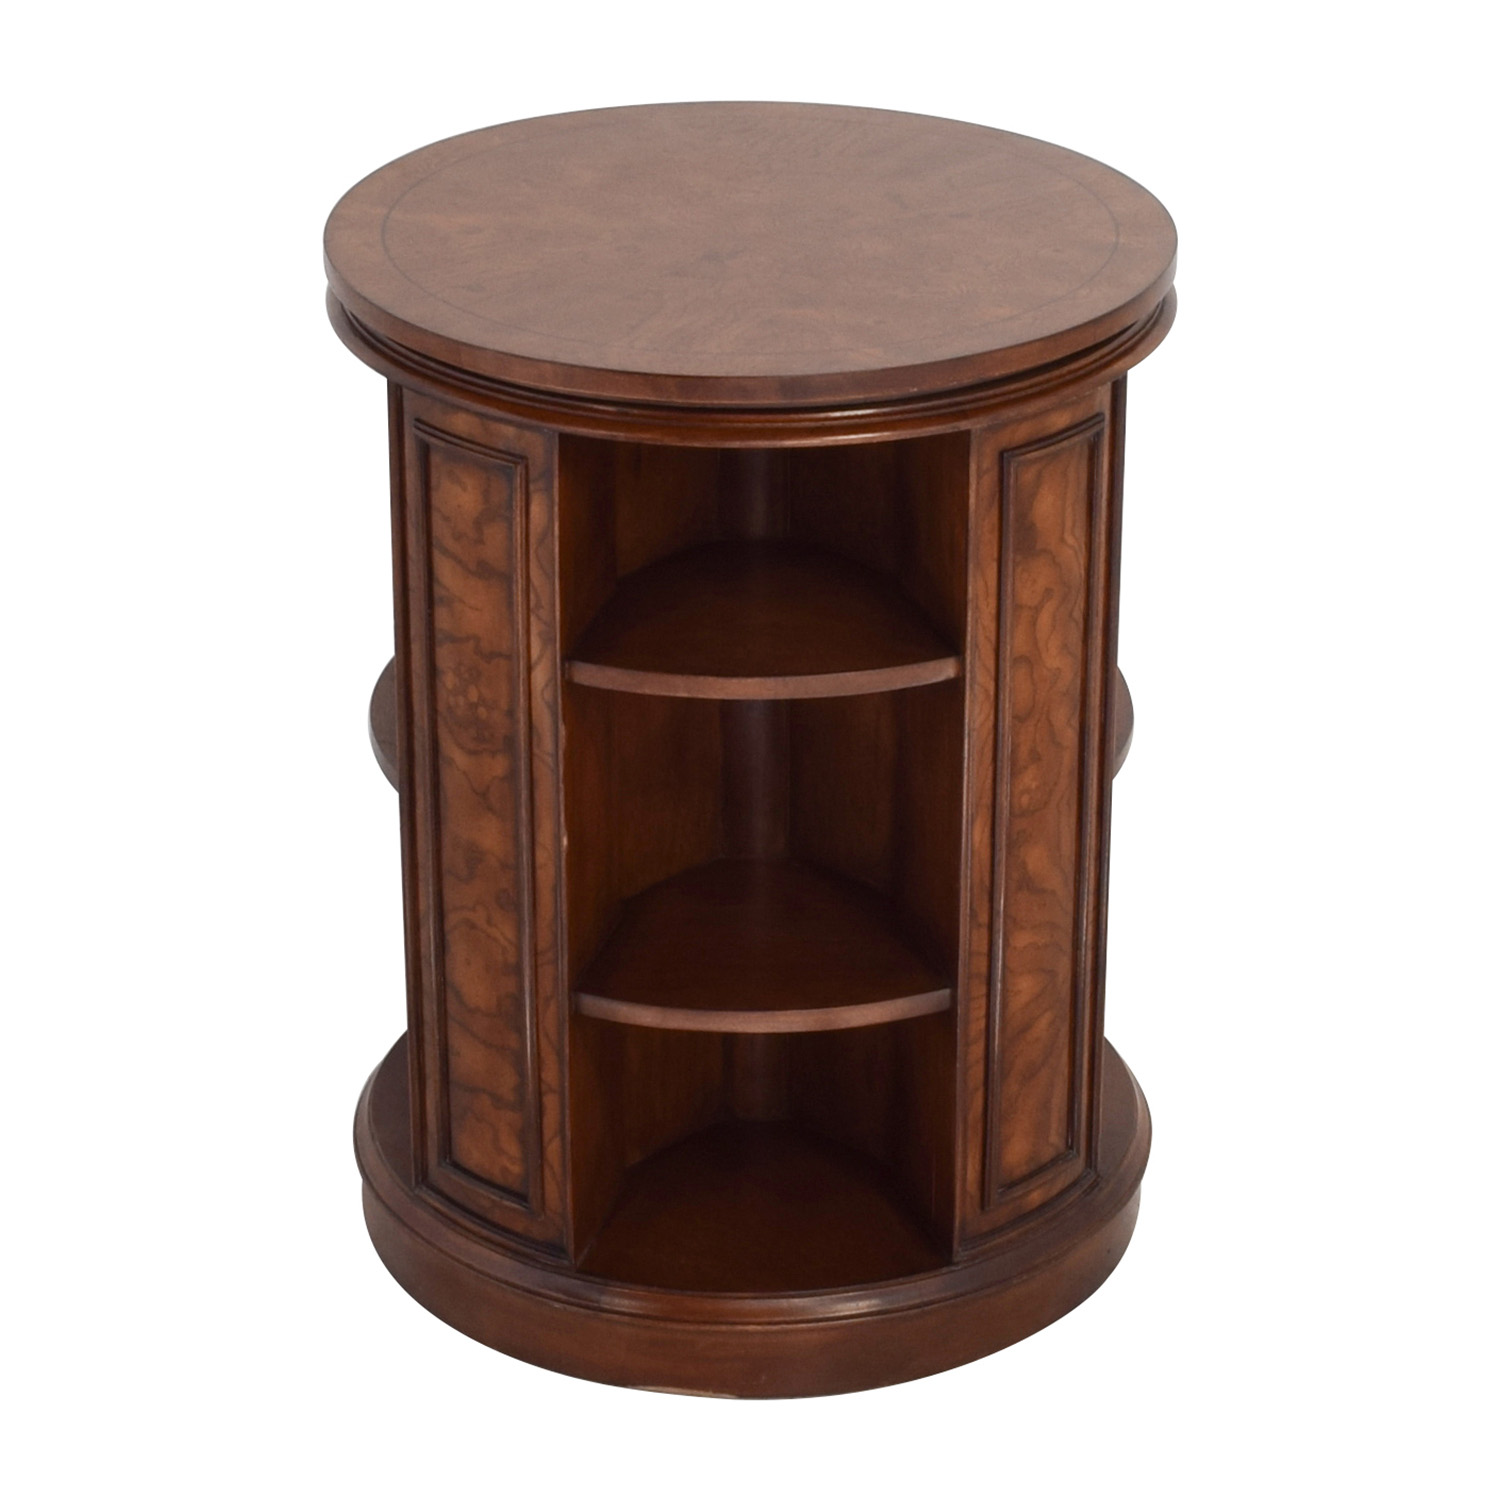 Safavieh Rotating Side Table Bookcase / Tables - 34% OFF - Lexington Lexington Natural Glass Cocktail Table / Tables